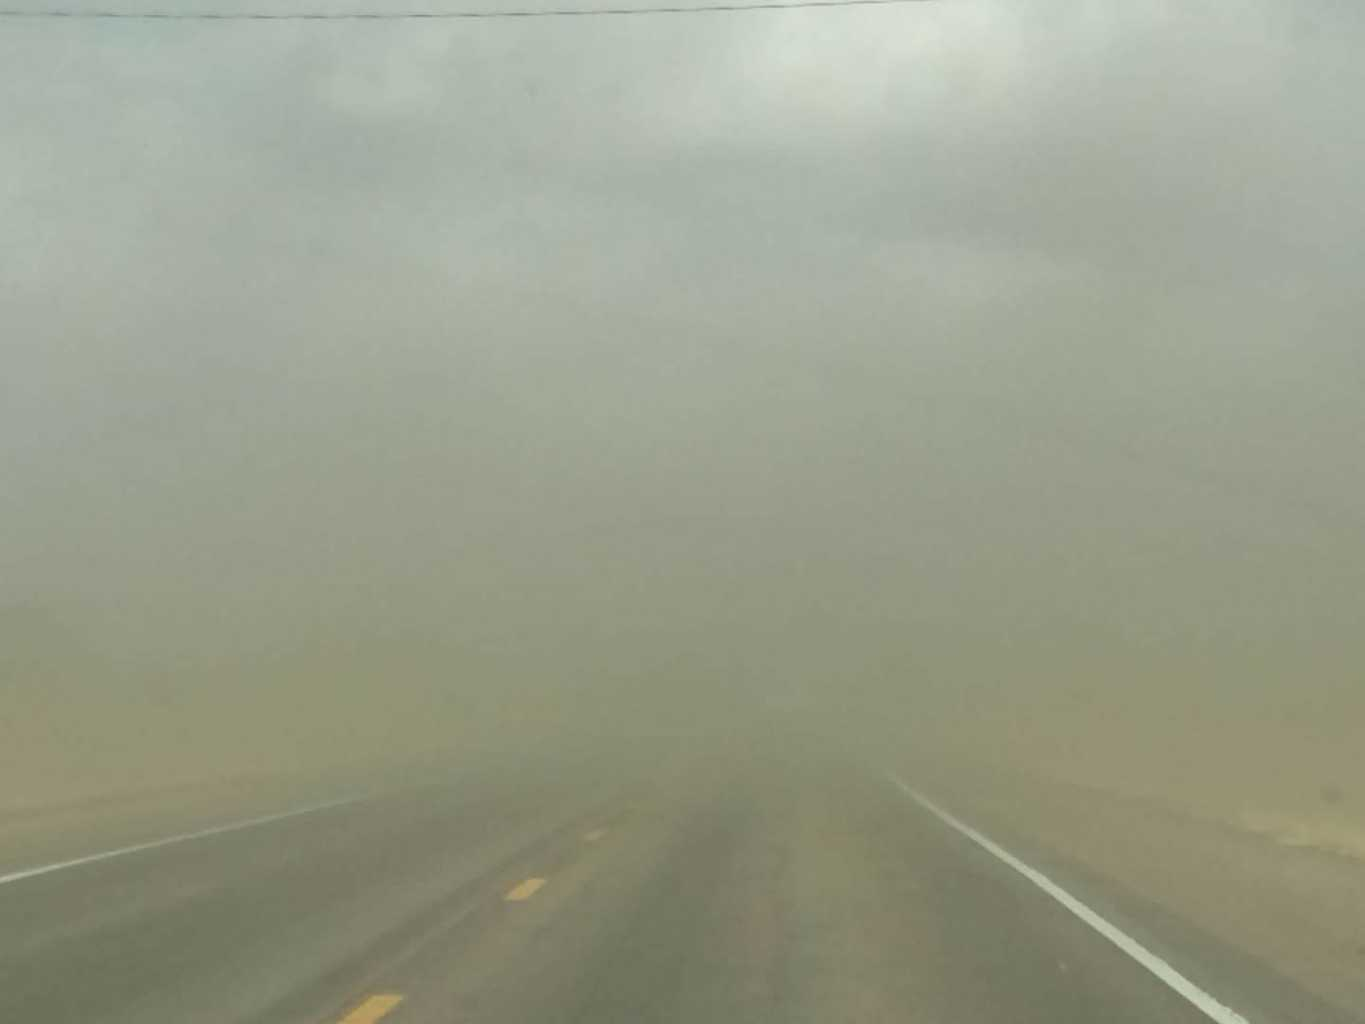 Tuesday afternoon in southern Nebraska, up to 58 mph. Top soil blowing away.